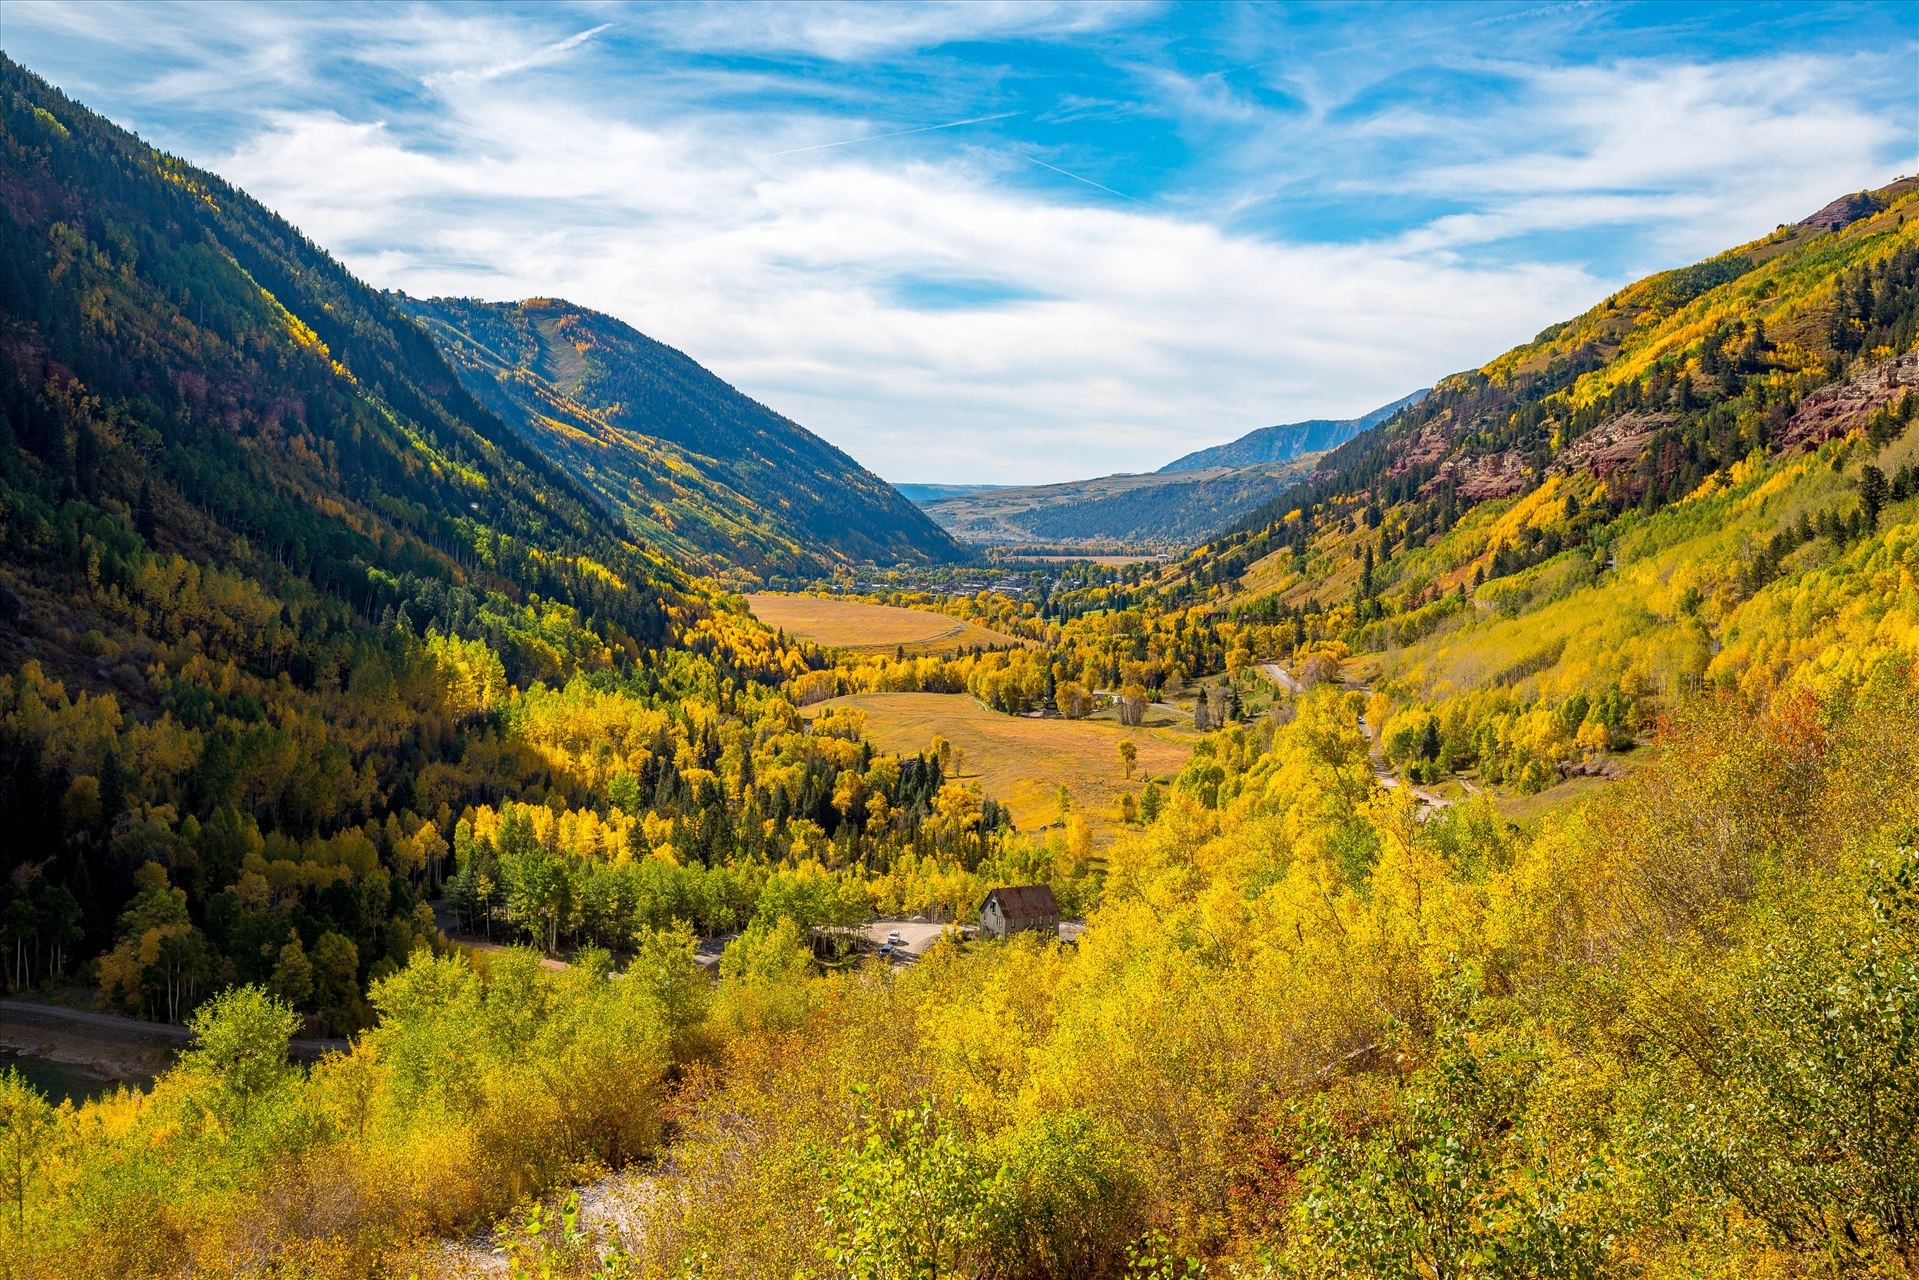 Ophir Pass 4 - Ophir Pass, between Ouray and Silverton Colorado in the fall. by D Scott Smith